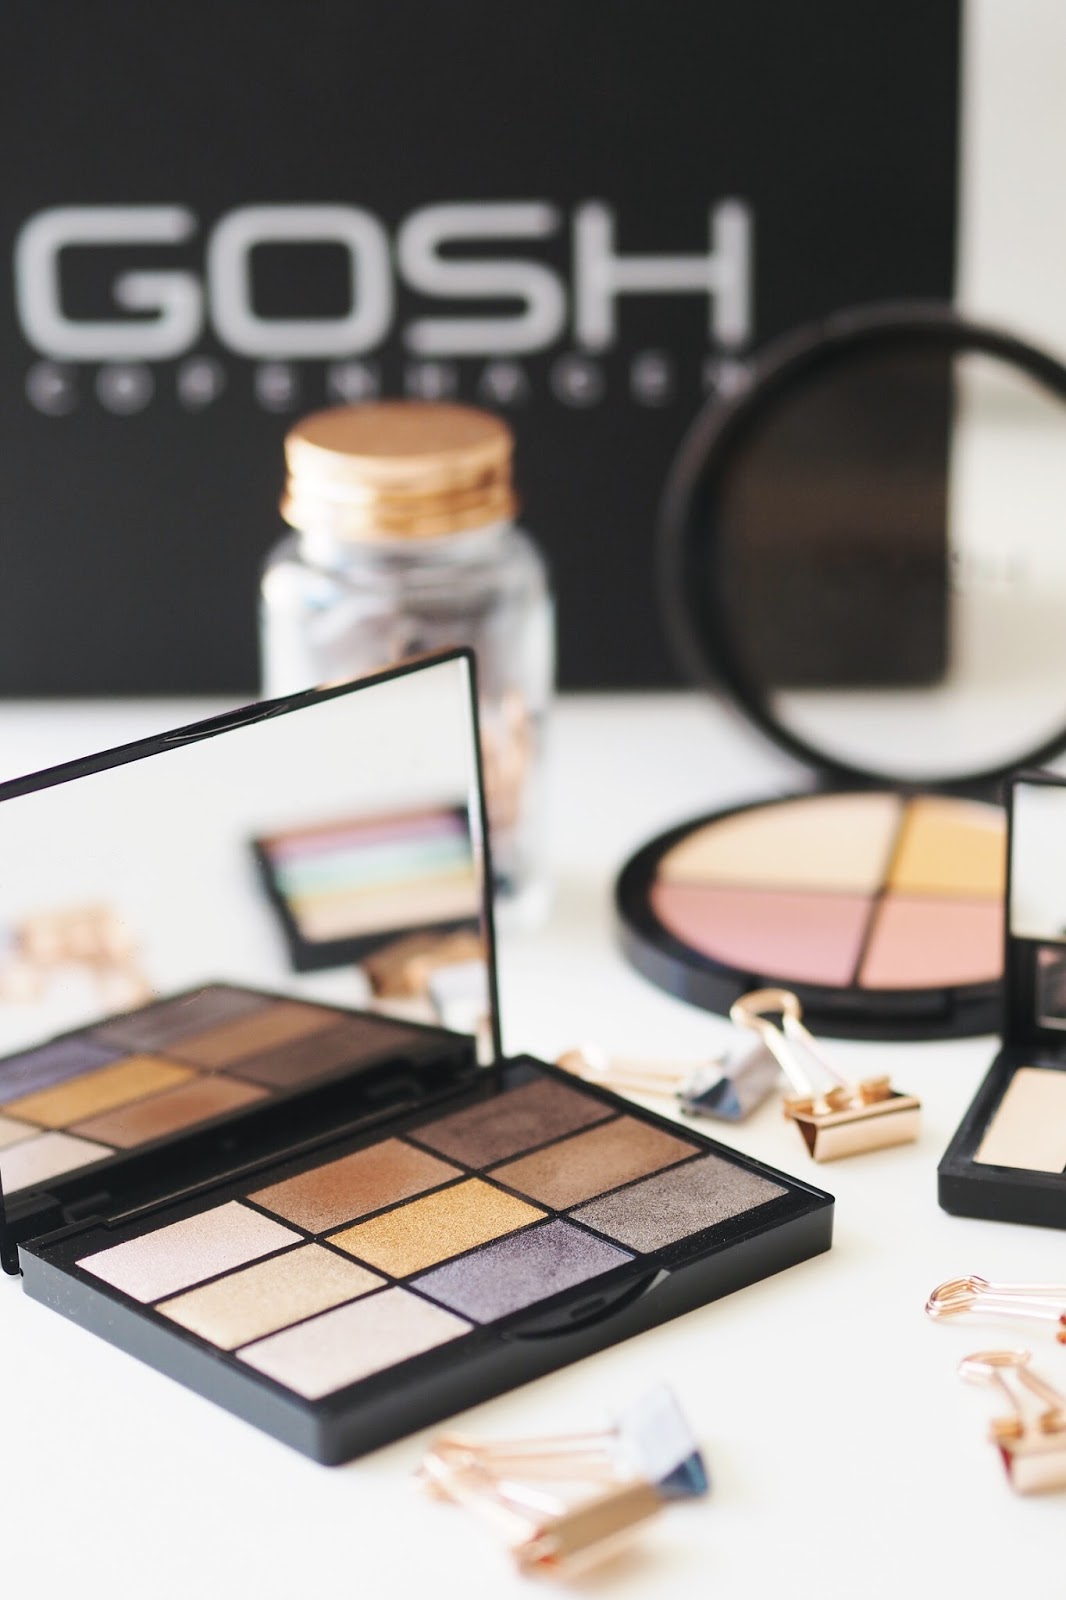 GOSH palettes review autumn winter colour correcting kit eyeshadow palette blush highlighter